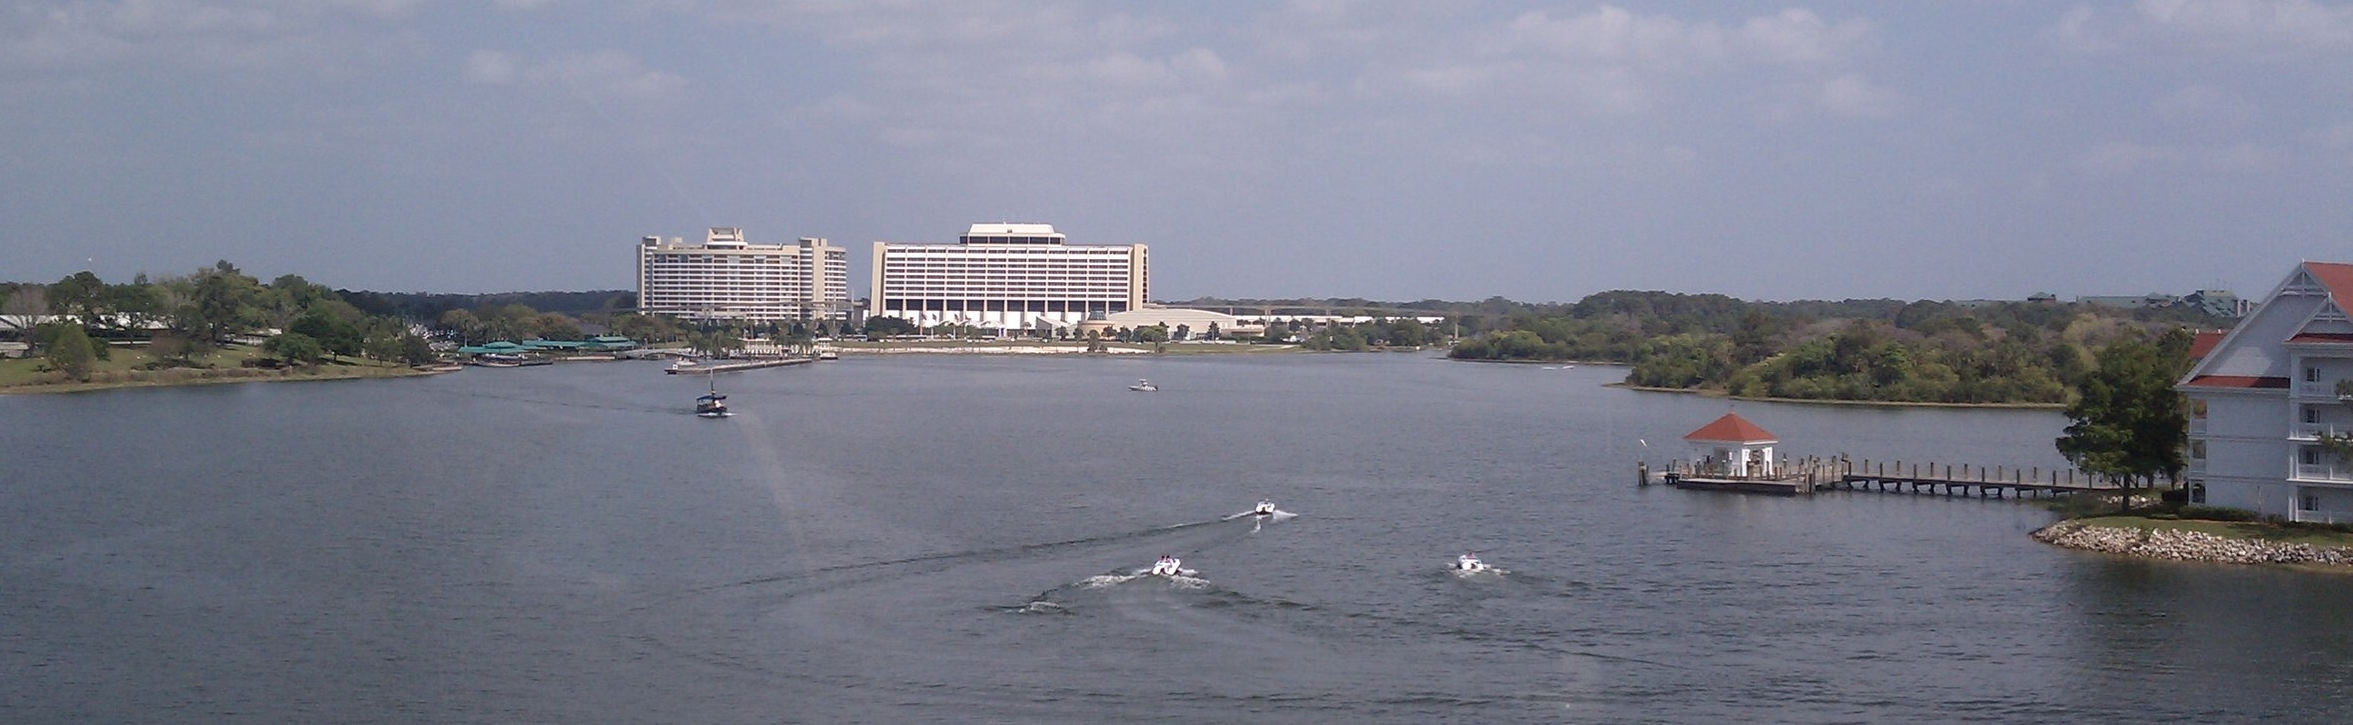 "The Contemporary and Bay Lake Tower viewed from the monorail with Seven Seas Lagoon, foreground. -By Panama ""the Alien"" Wright"